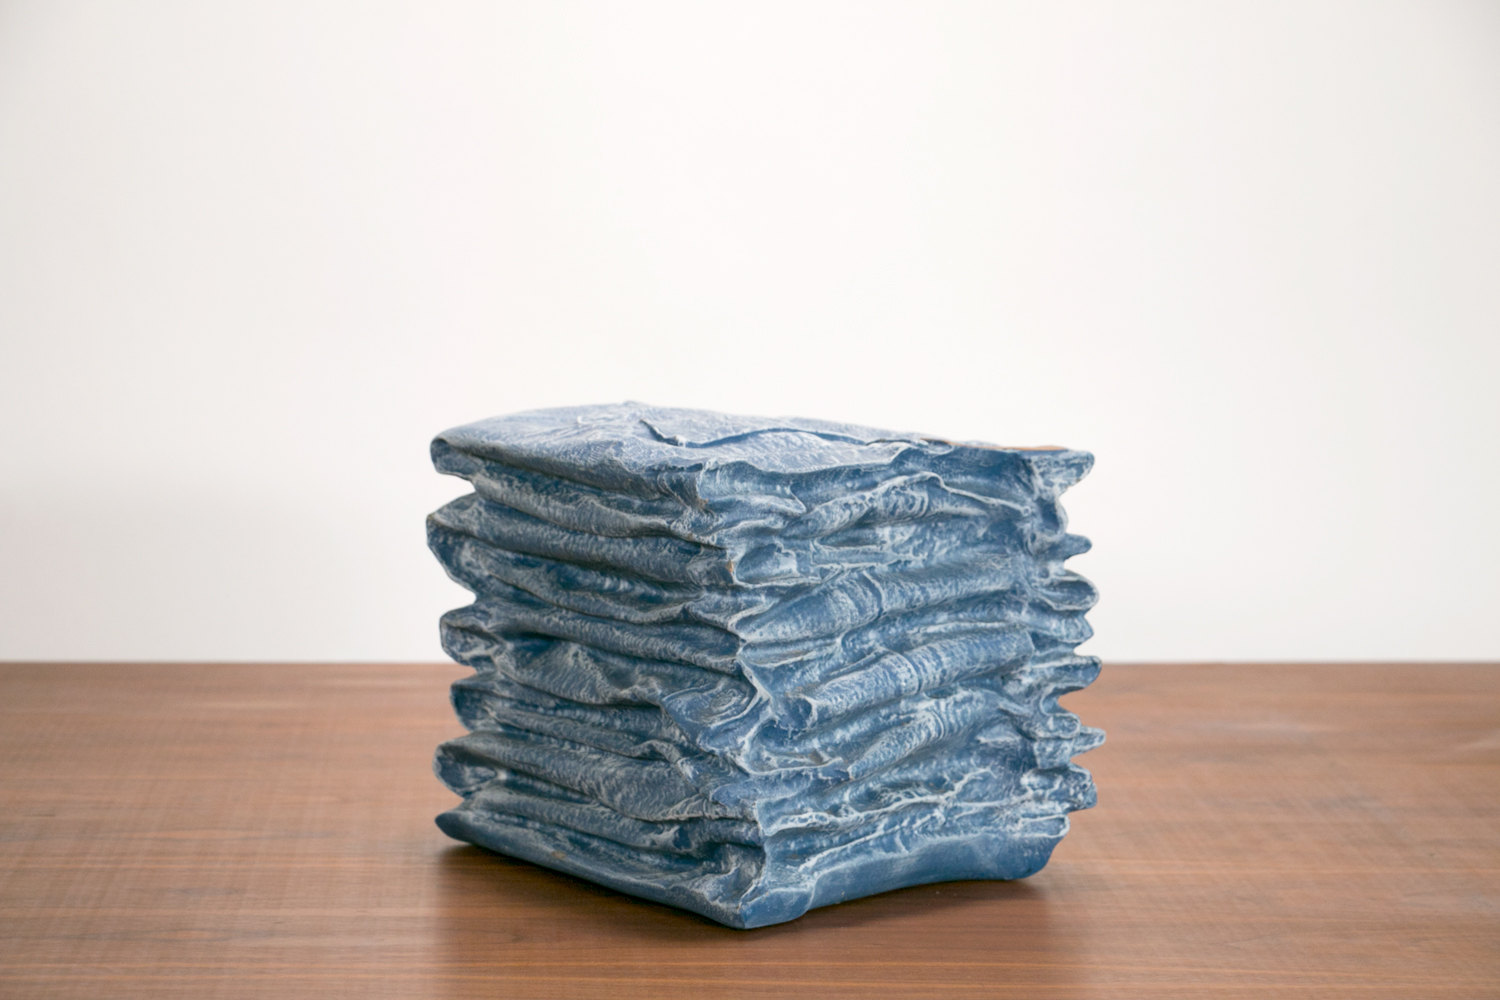 Vintage 1970's Fiberglass Stack of Jeans Display // Retro, Advertising, Hipster, Post Modern, Art